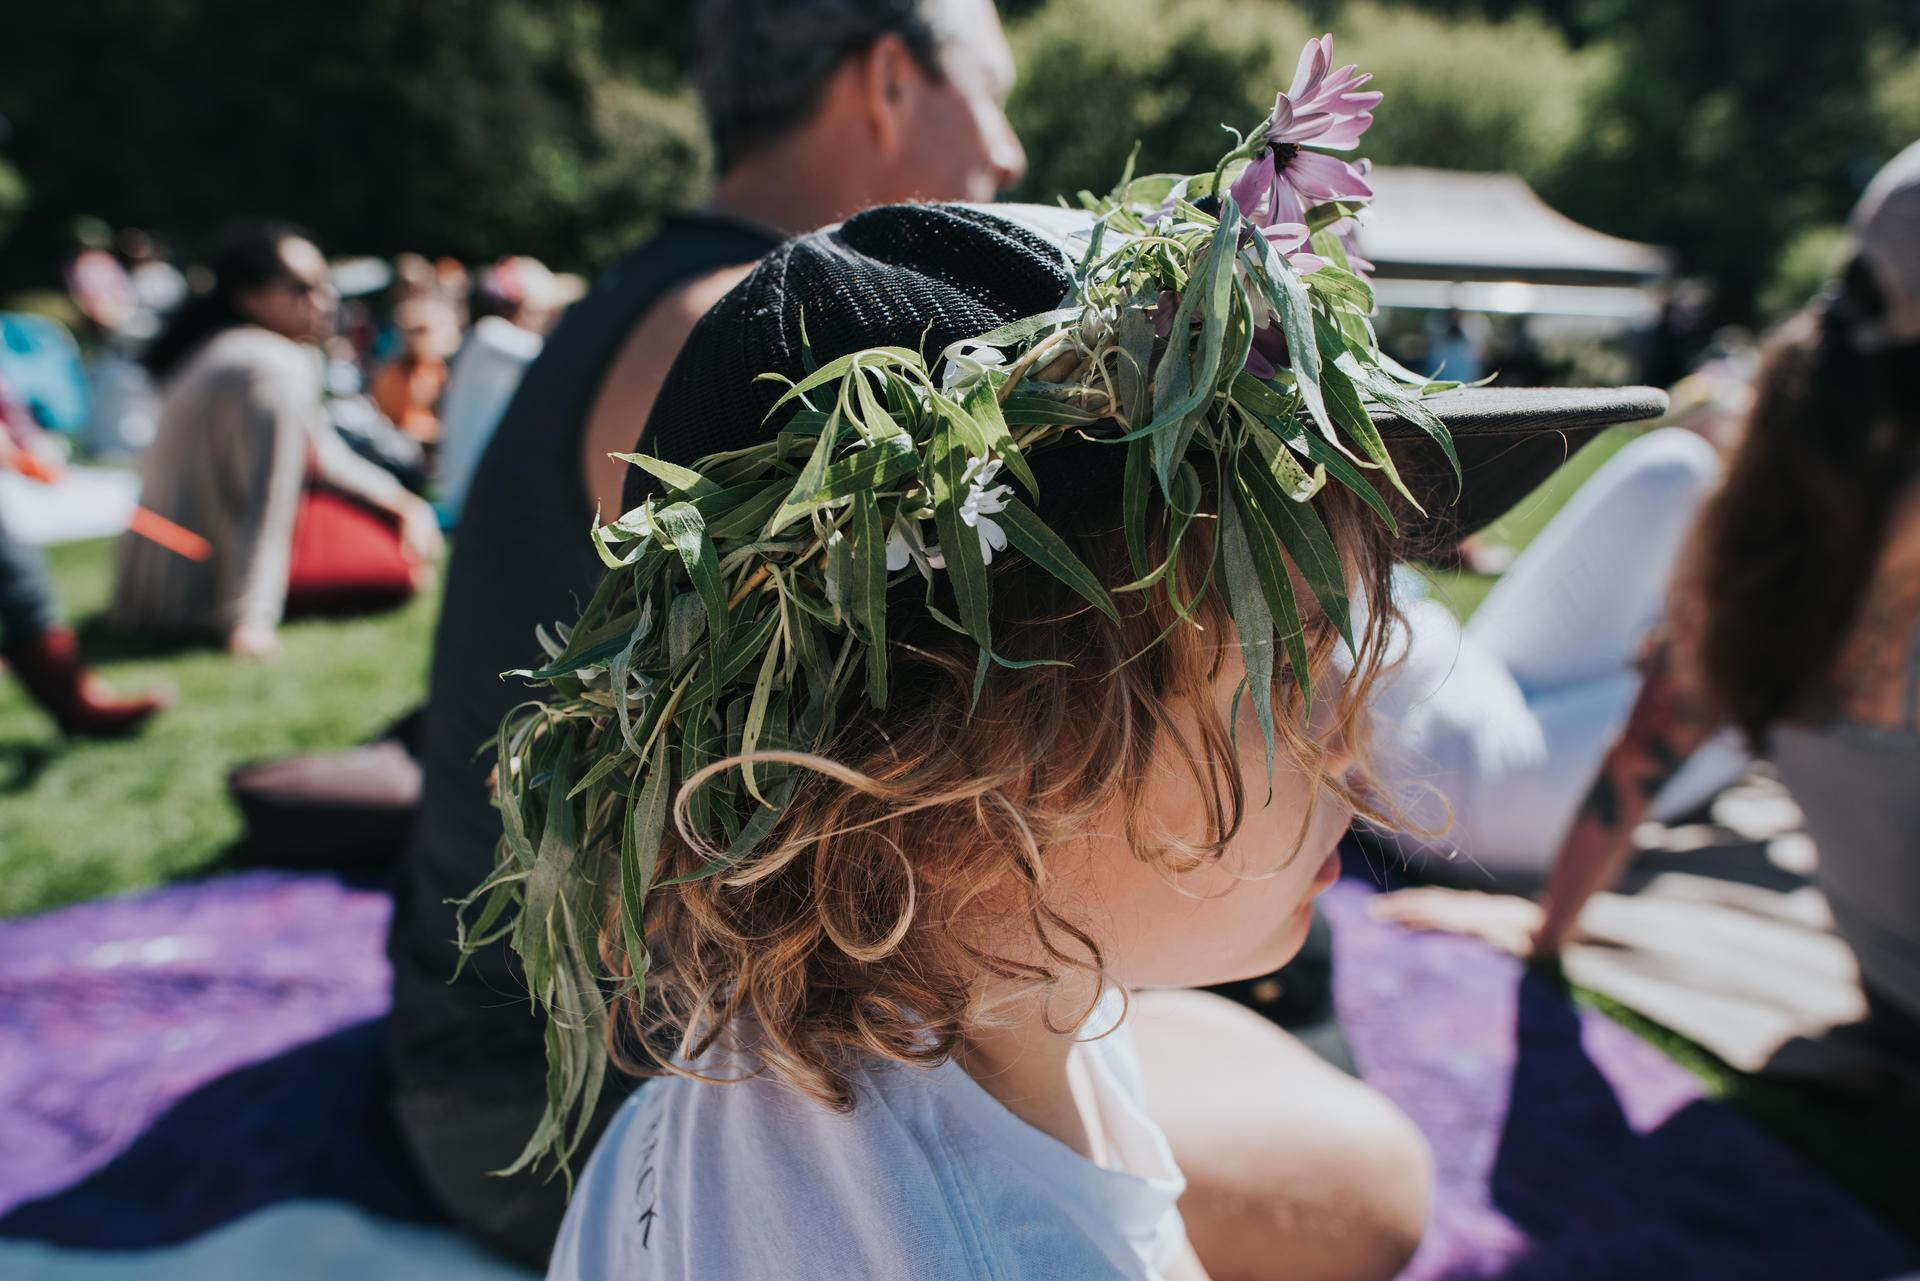 Child with a crown of willow